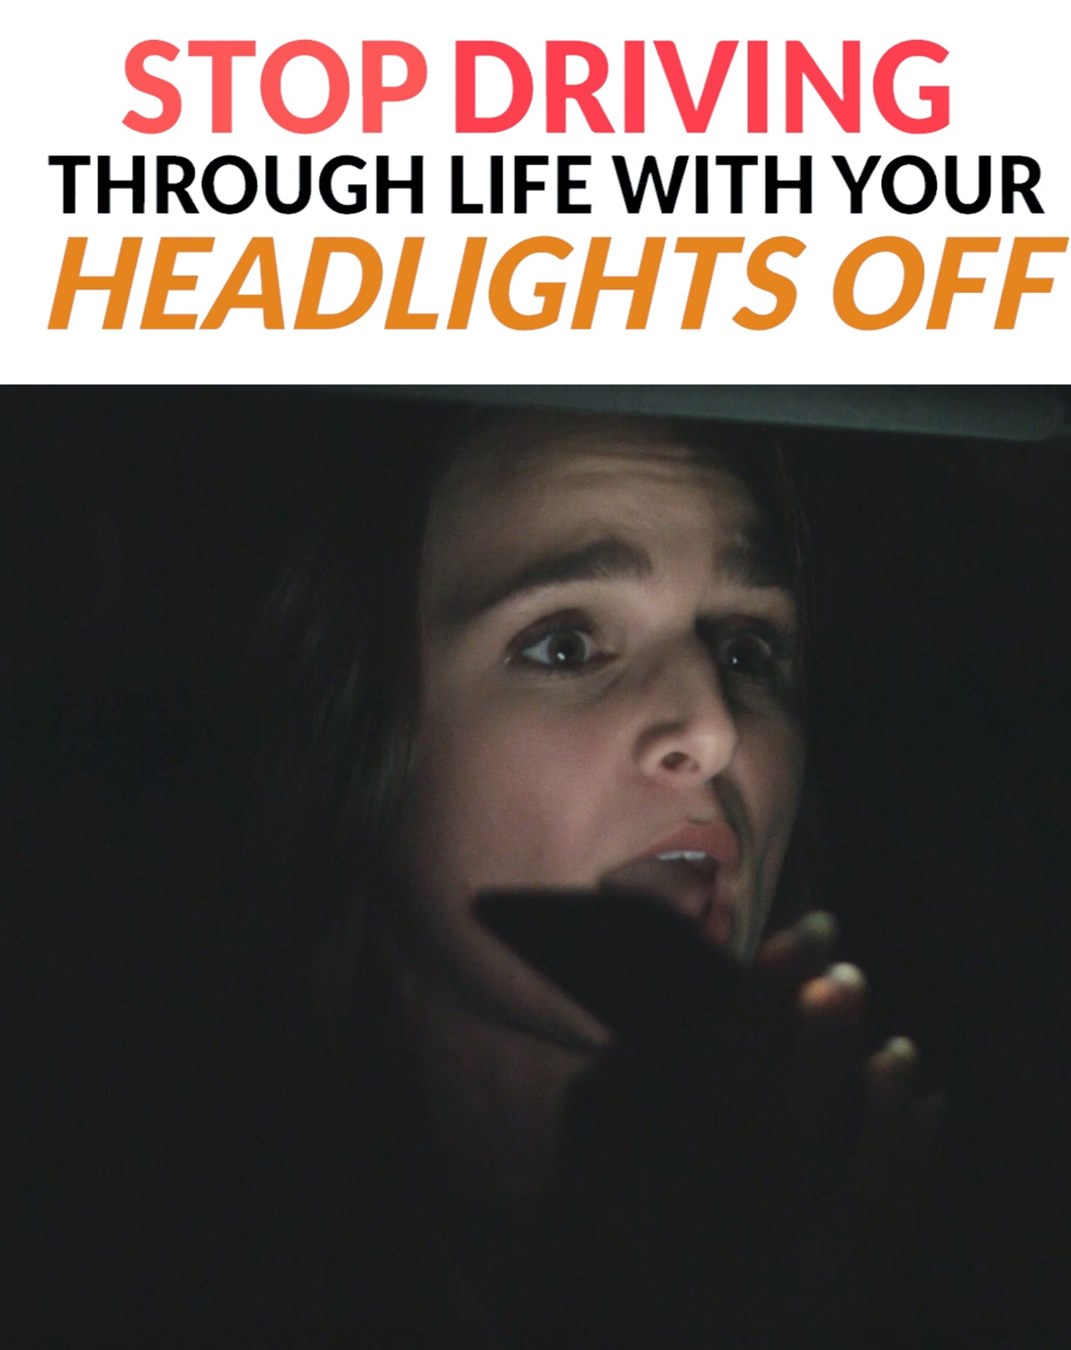 Stop driving through life with your headlights off